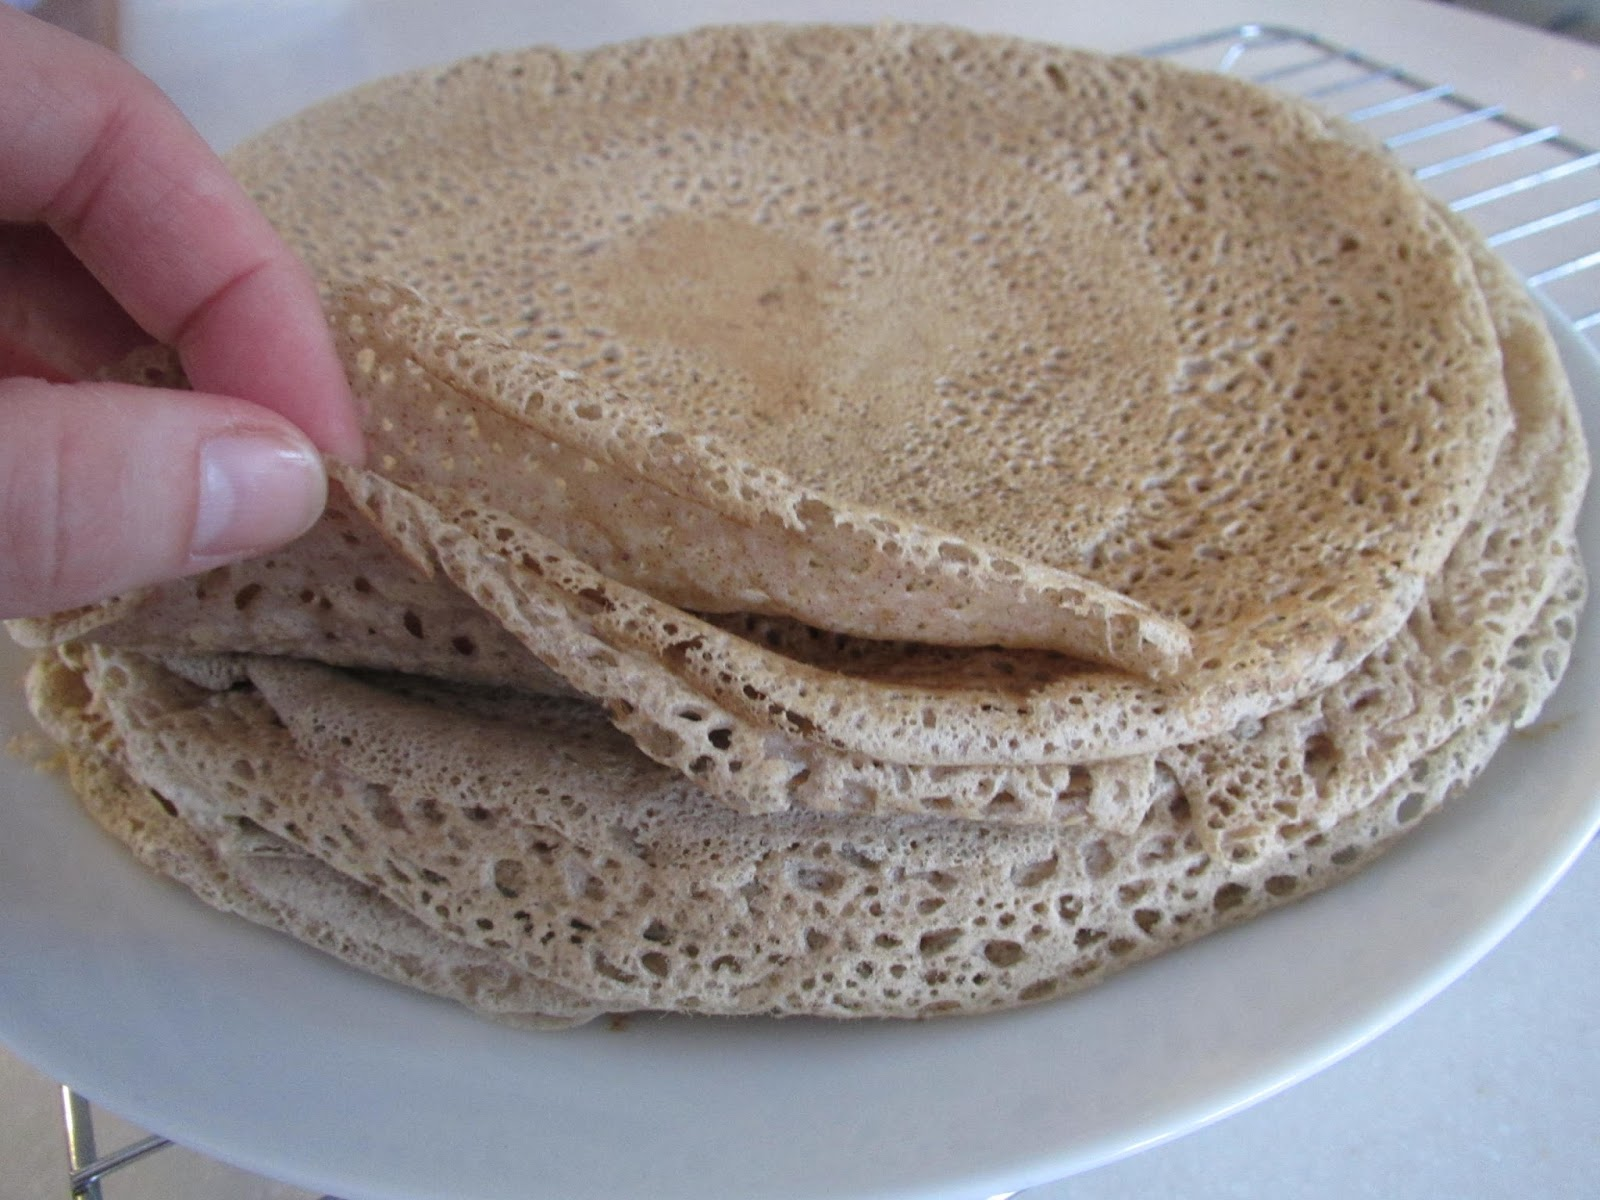 ... Gluten Free! : Gluten-Free Hearty Crepes (with Buckwheat Flour